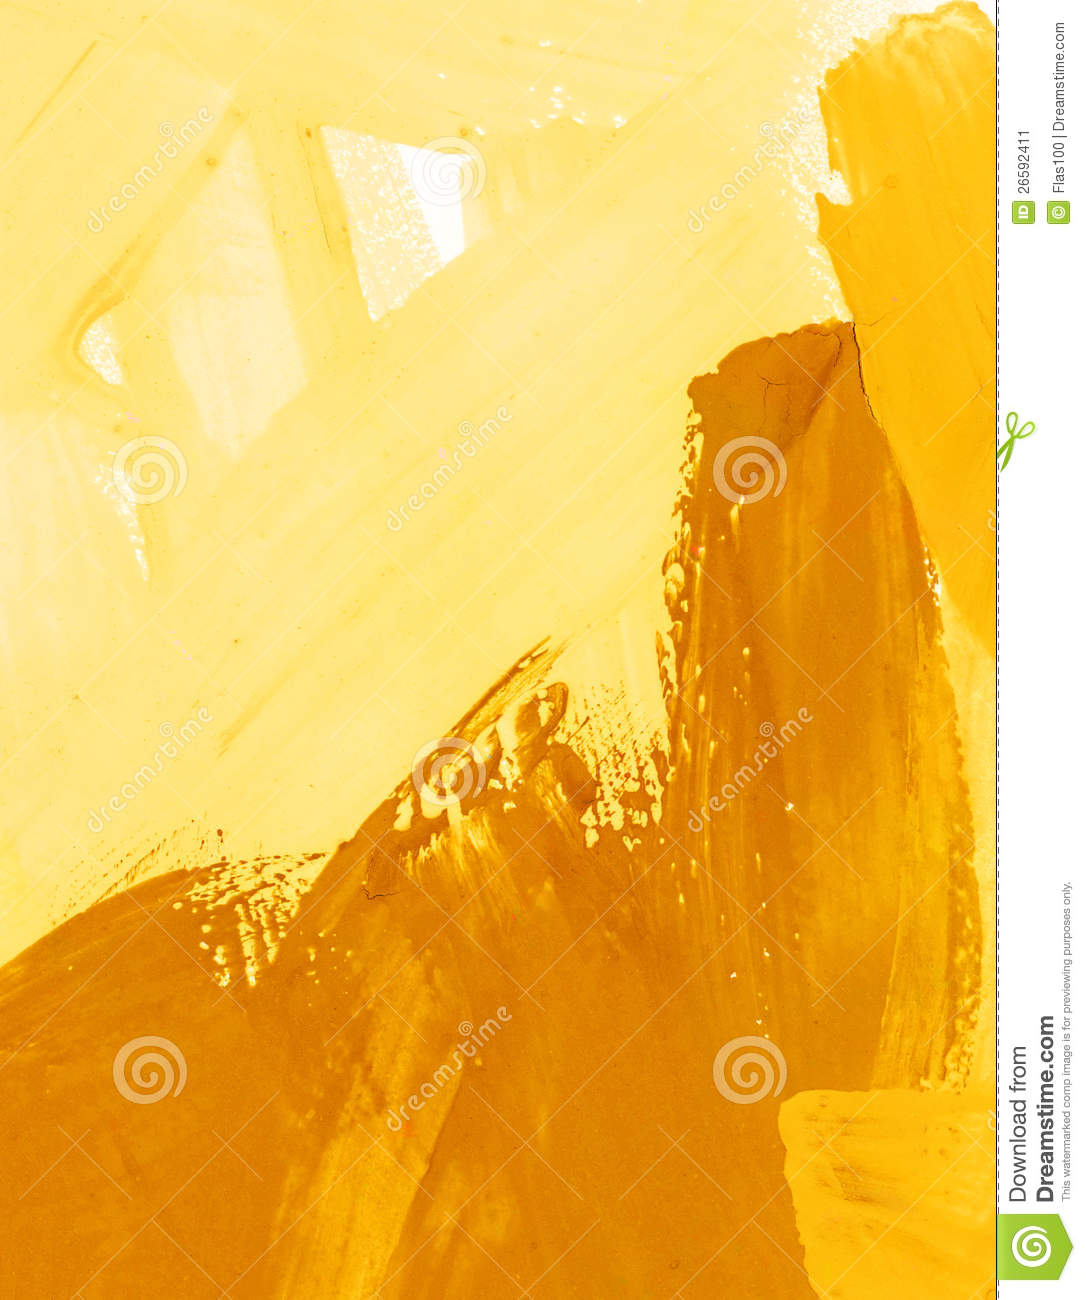 Download Abstract Brush Strokes Texture Stock Illustration